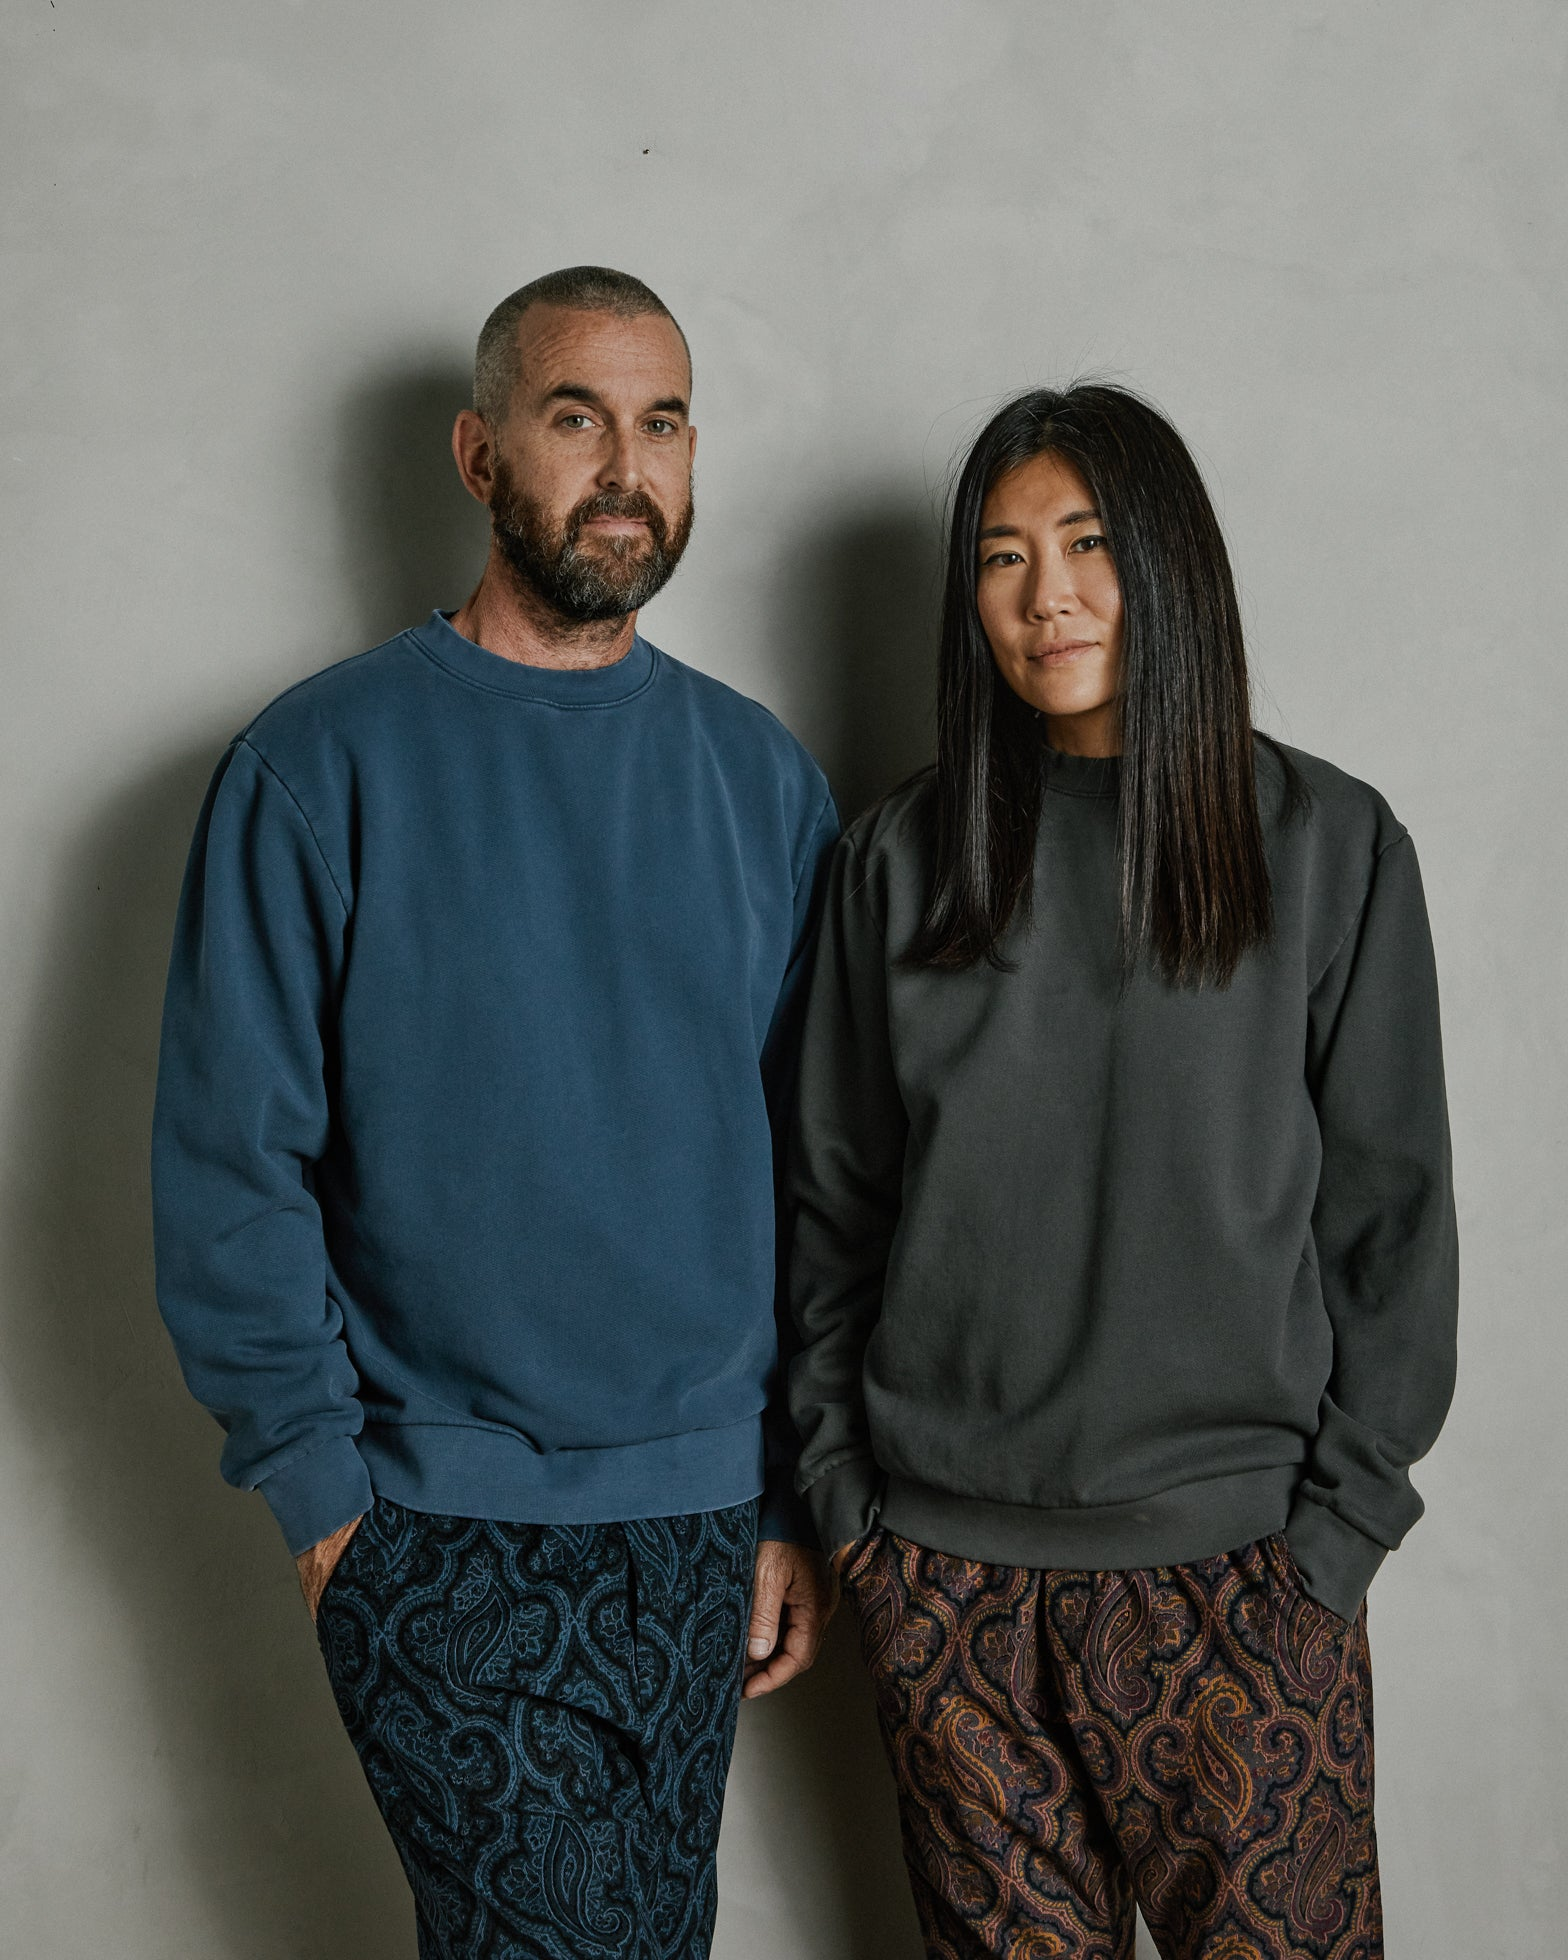 Albers Crew Neck Sweatshirt in Bauhaus